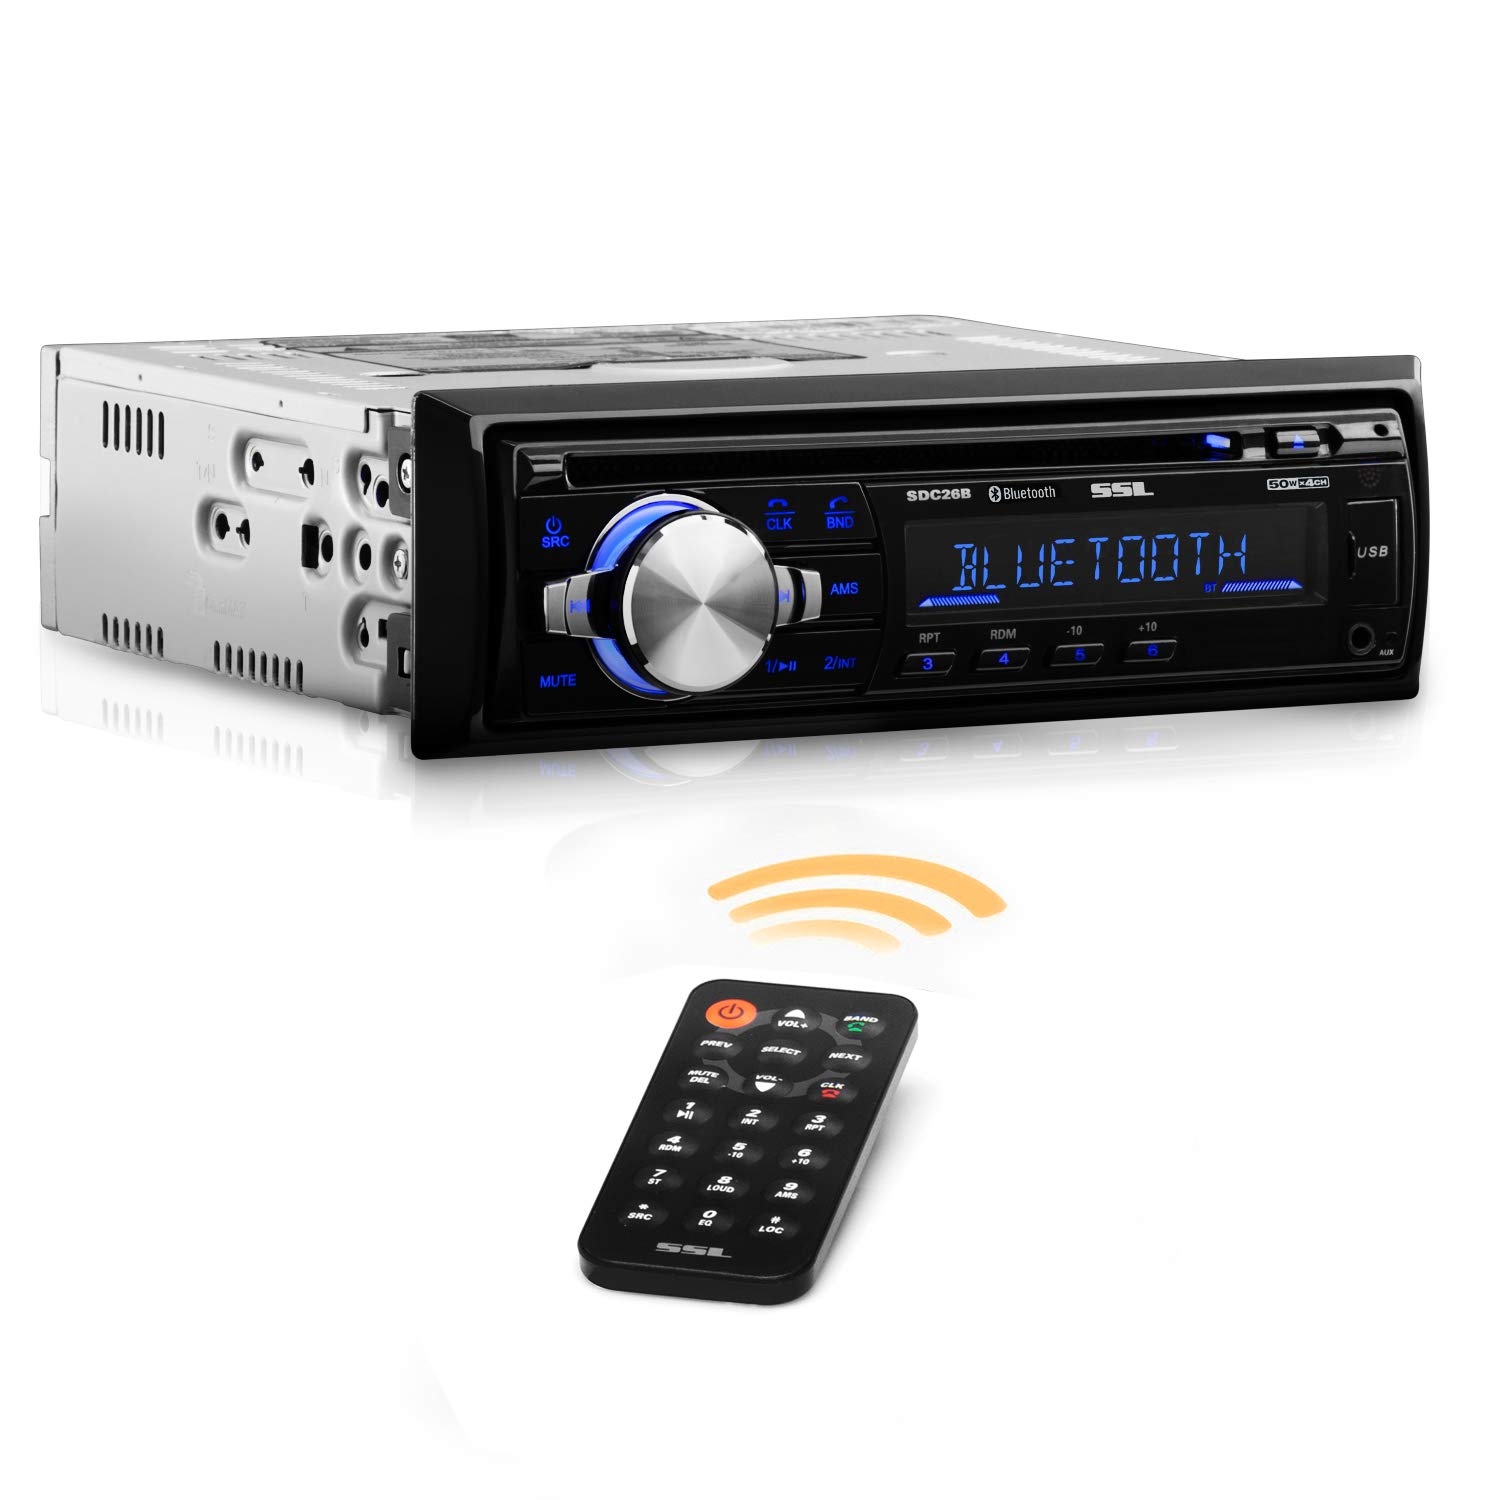 Sound Storm Labs SDC26B Car Stereo CD Player - Single Din  Bluetooth Audio and Hands Free Calling  MP3 Player  CD  USB Port  AUX Input  AMFM Radio Receiver by Sound Storm Laboratories